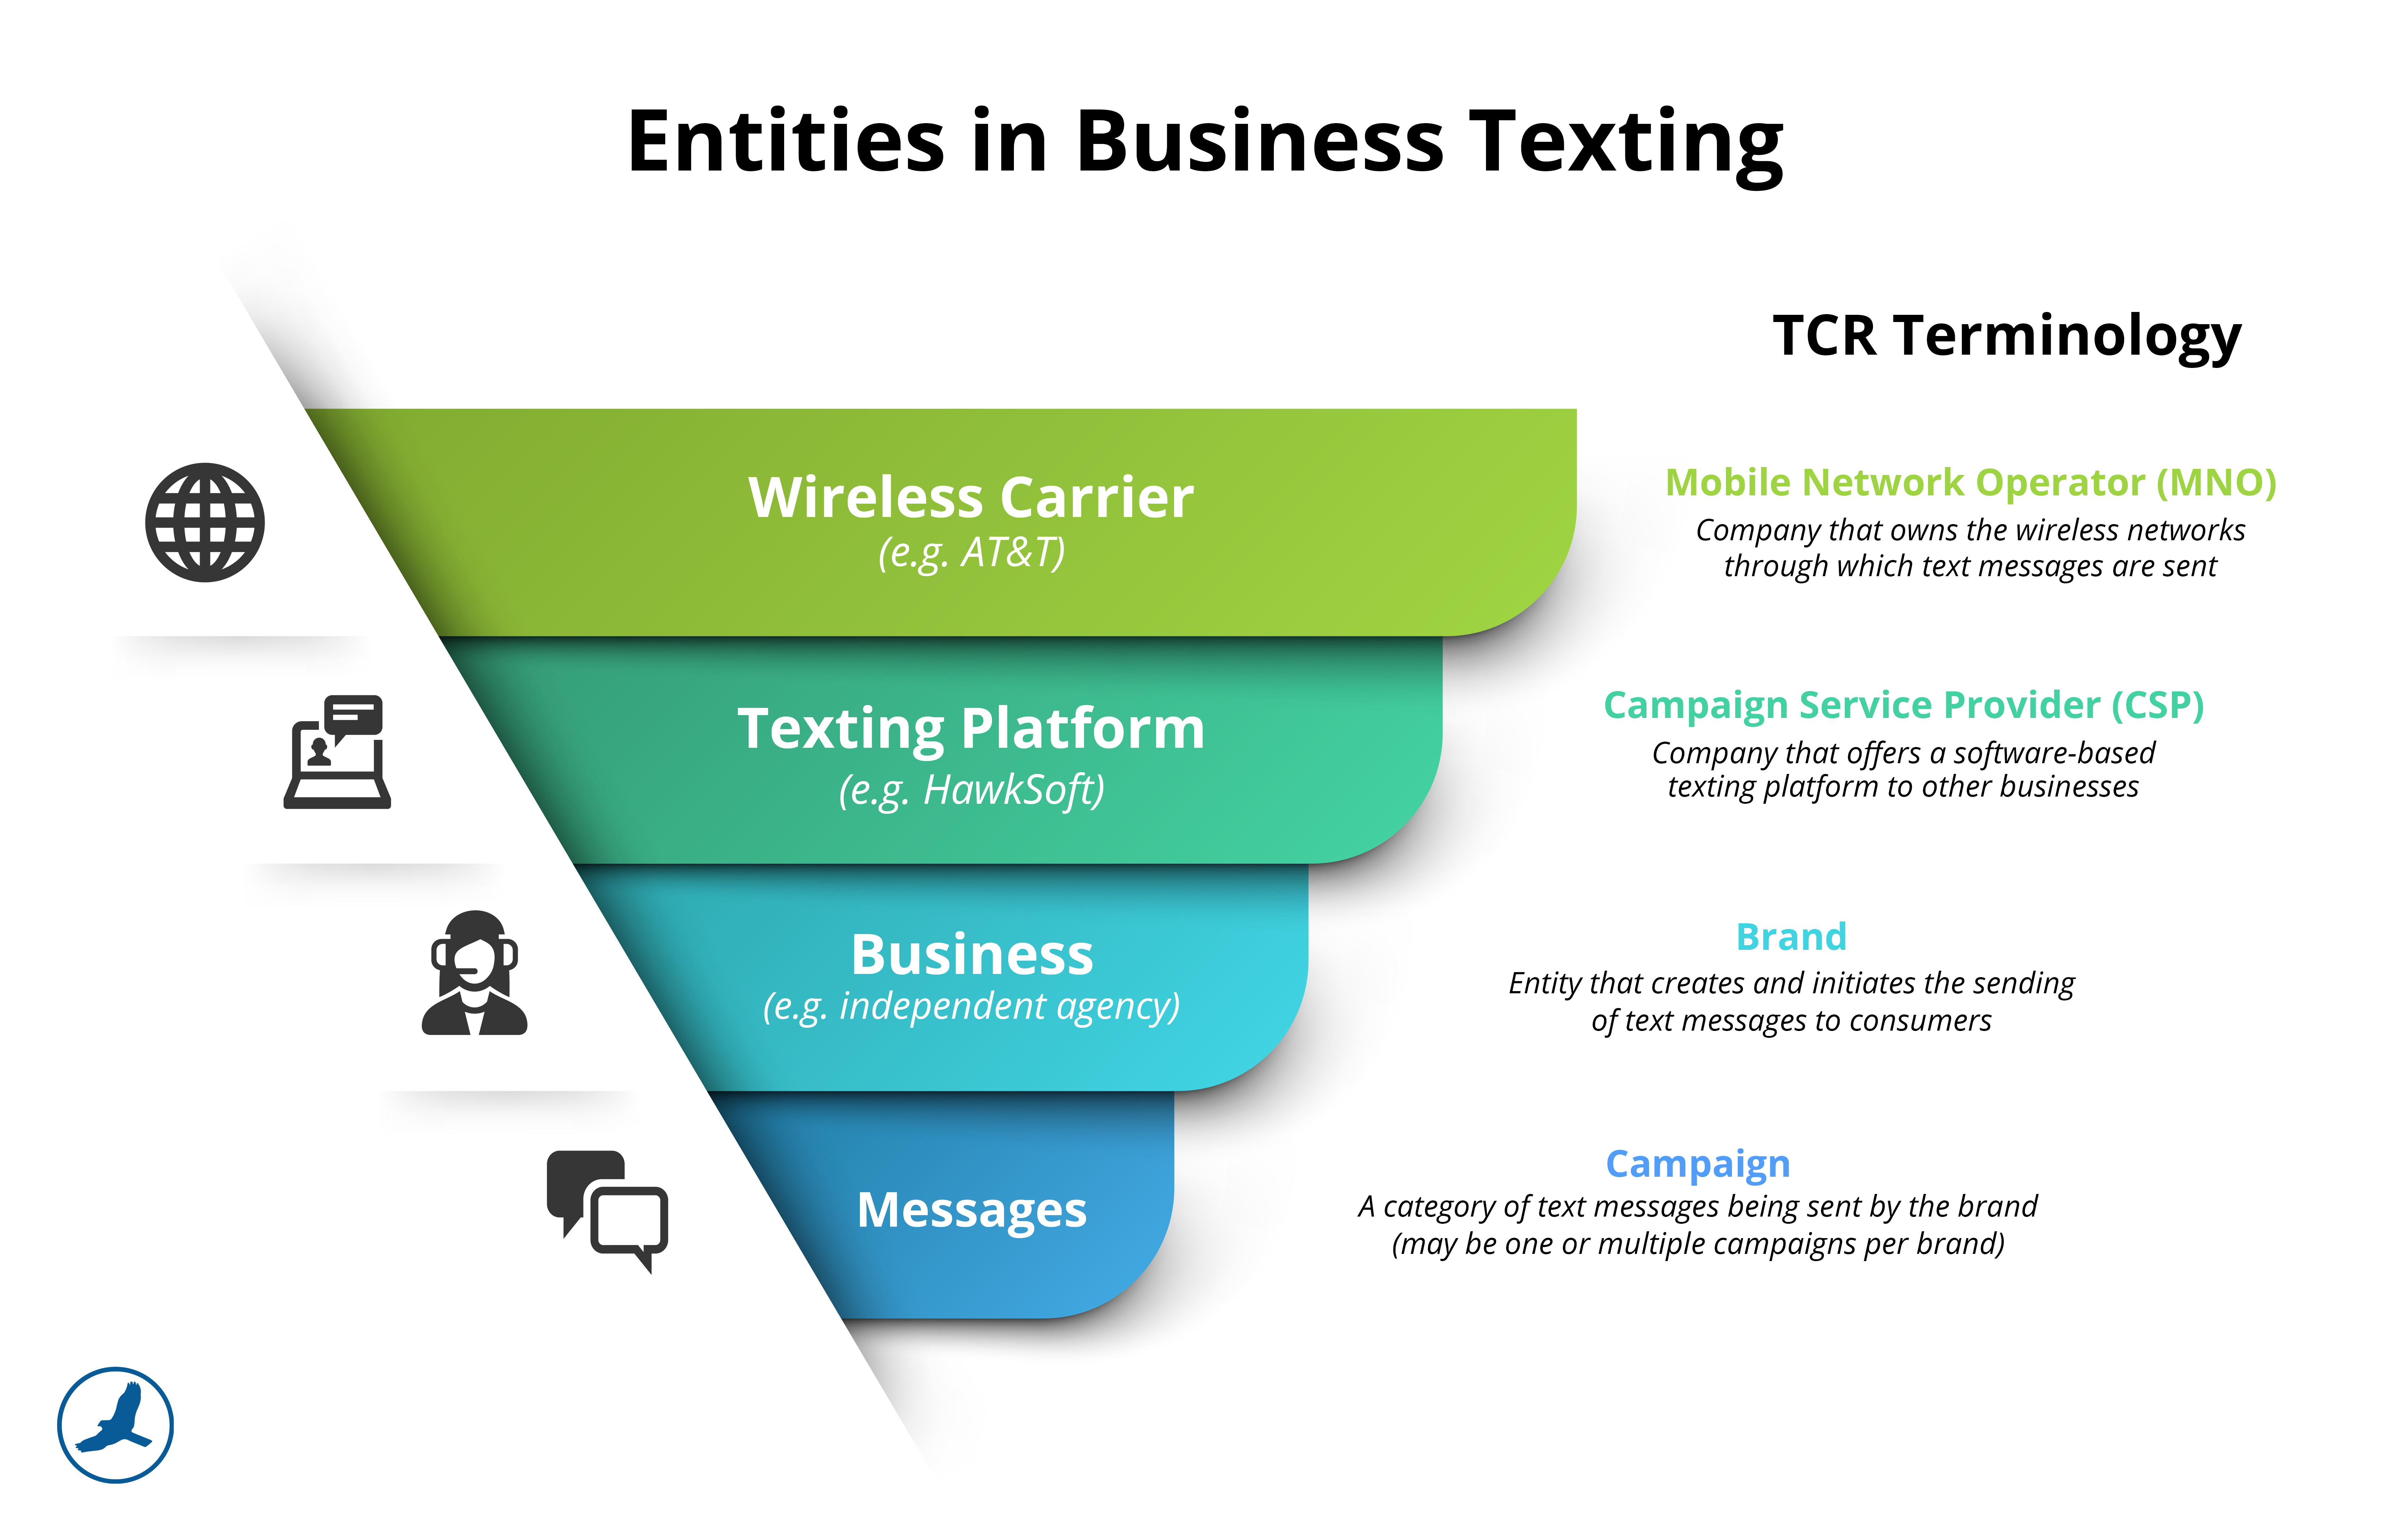 Entities in Business Texting